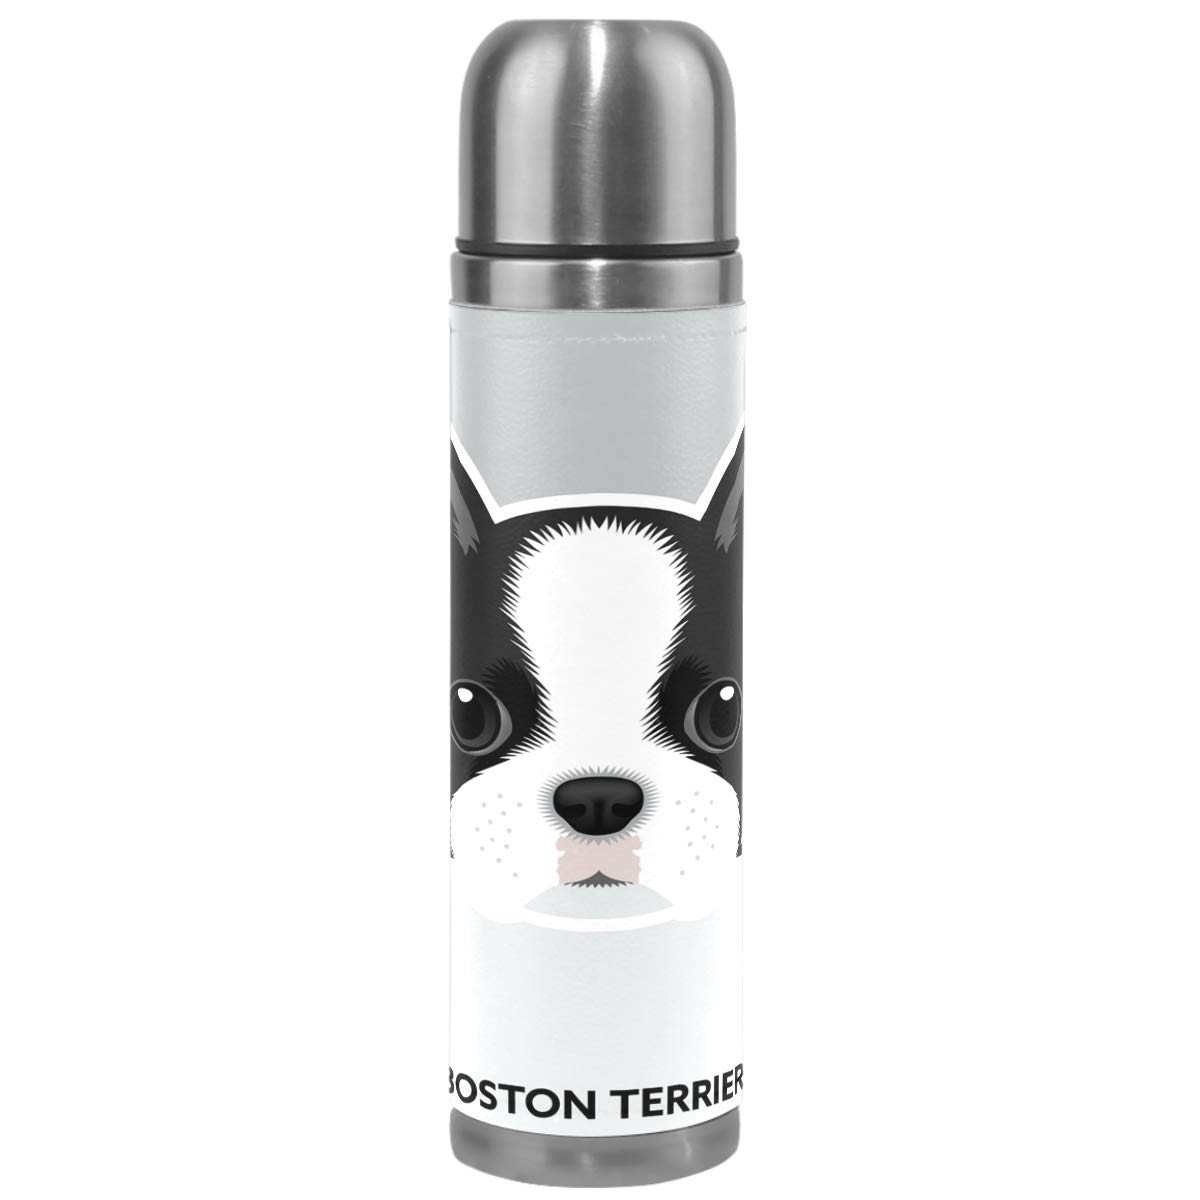 Wamika Cute Dog Pattern Vacuum Insulated Stainless Steel Water Bottle, Boston Terrier Puppy Funny Pets Animals Sports Coffee Travel Mug Thermos Cup Genuine Leather Cover Double Walled BPA Free 17 OZ by Wamika (Image #1)